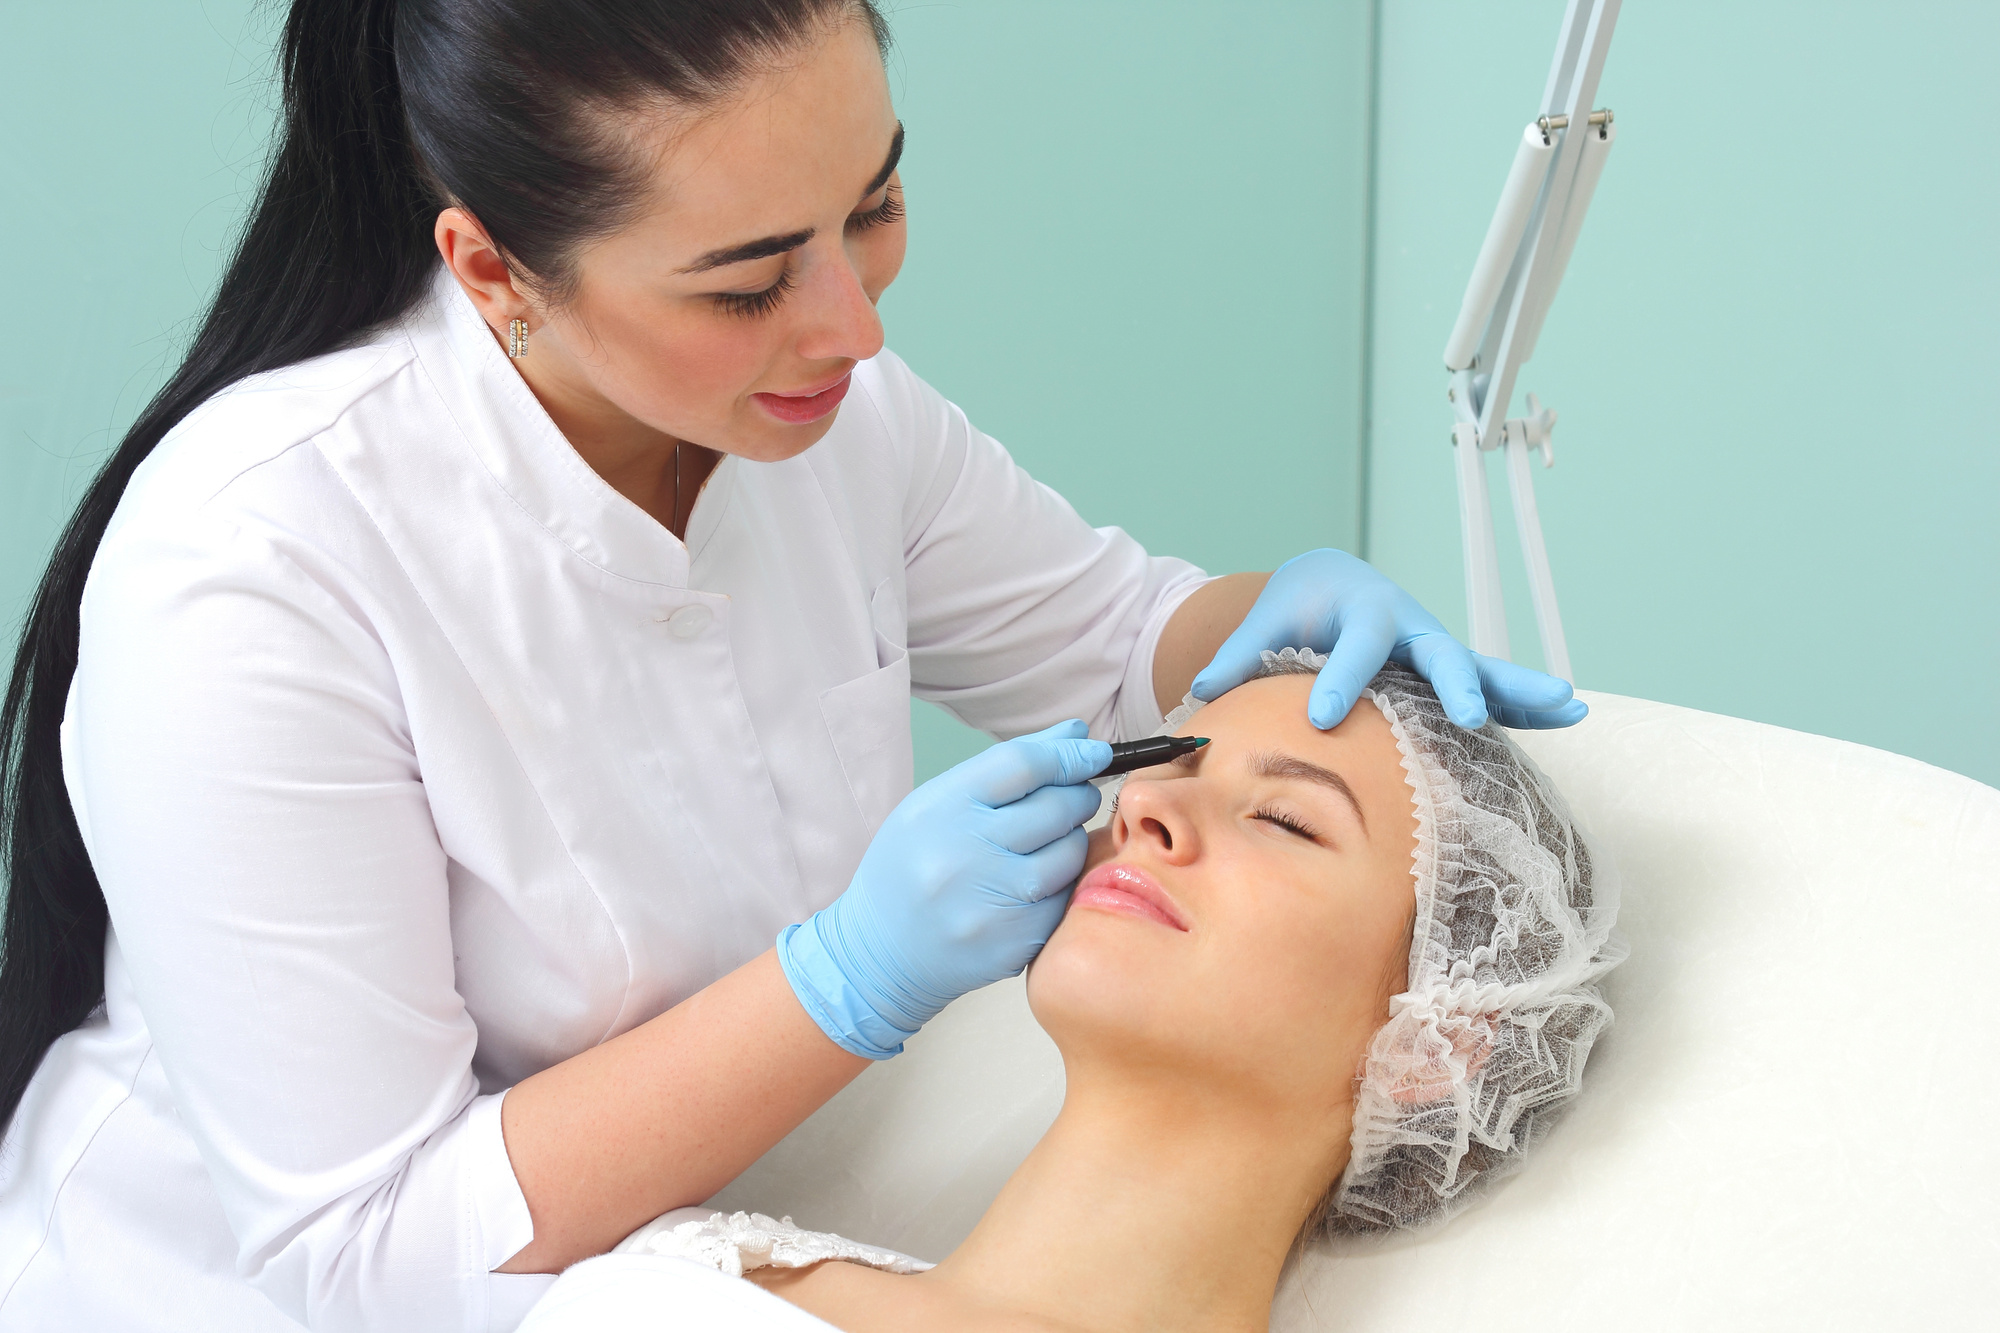 The Best Time to Get Eyelid Surgery